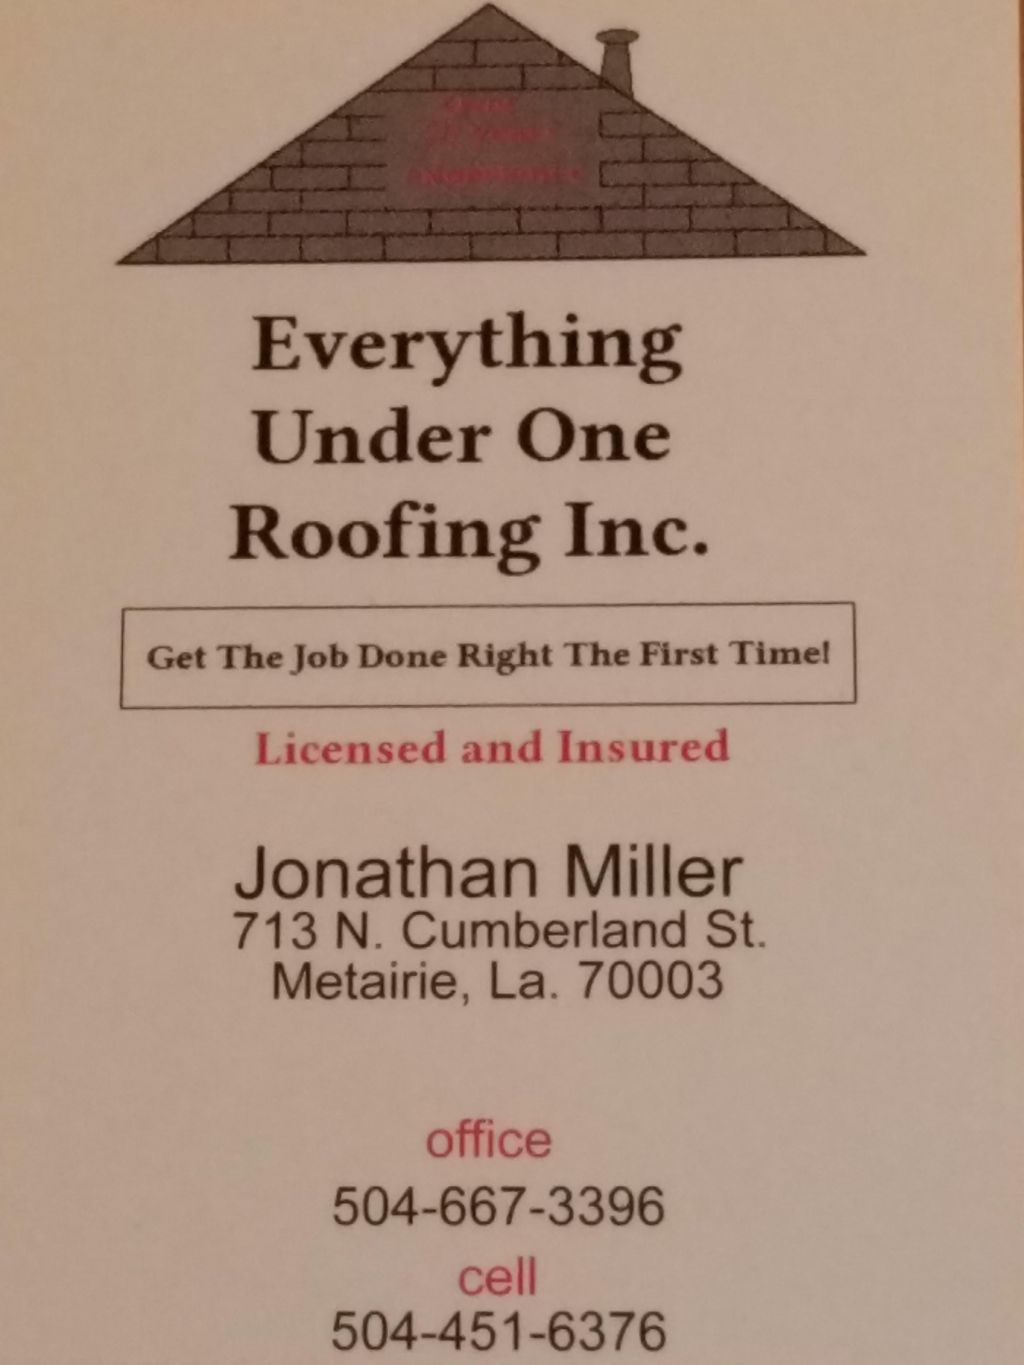 Everything under one roofing Inc.